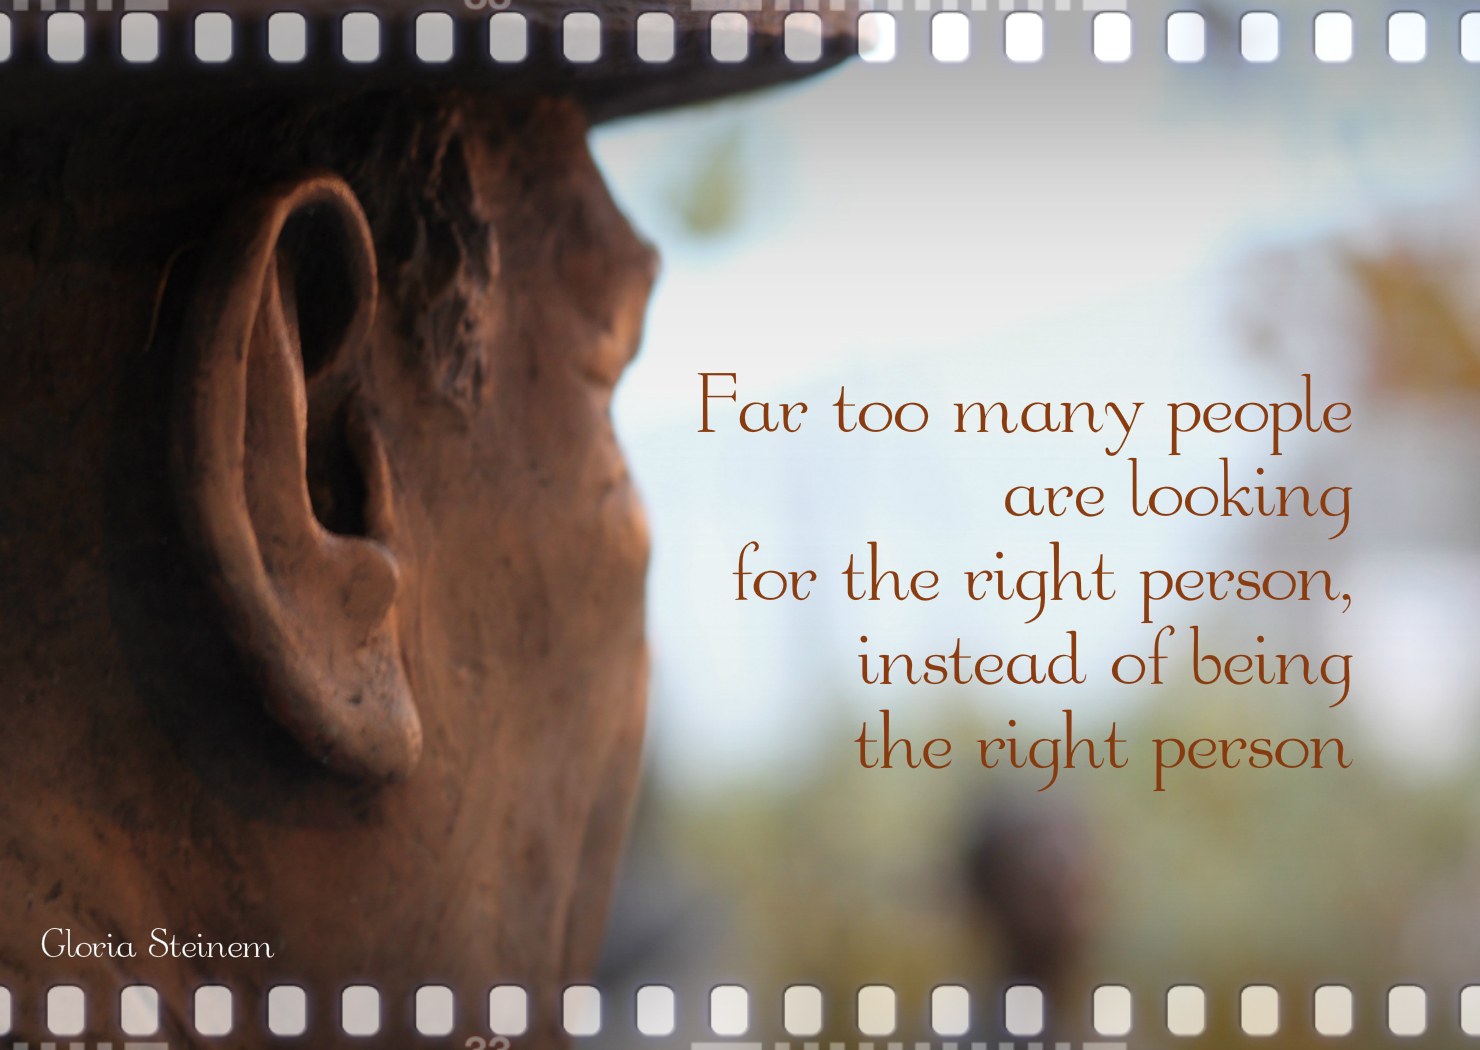 Far too many people are looking for the right person, instead of being the right person.